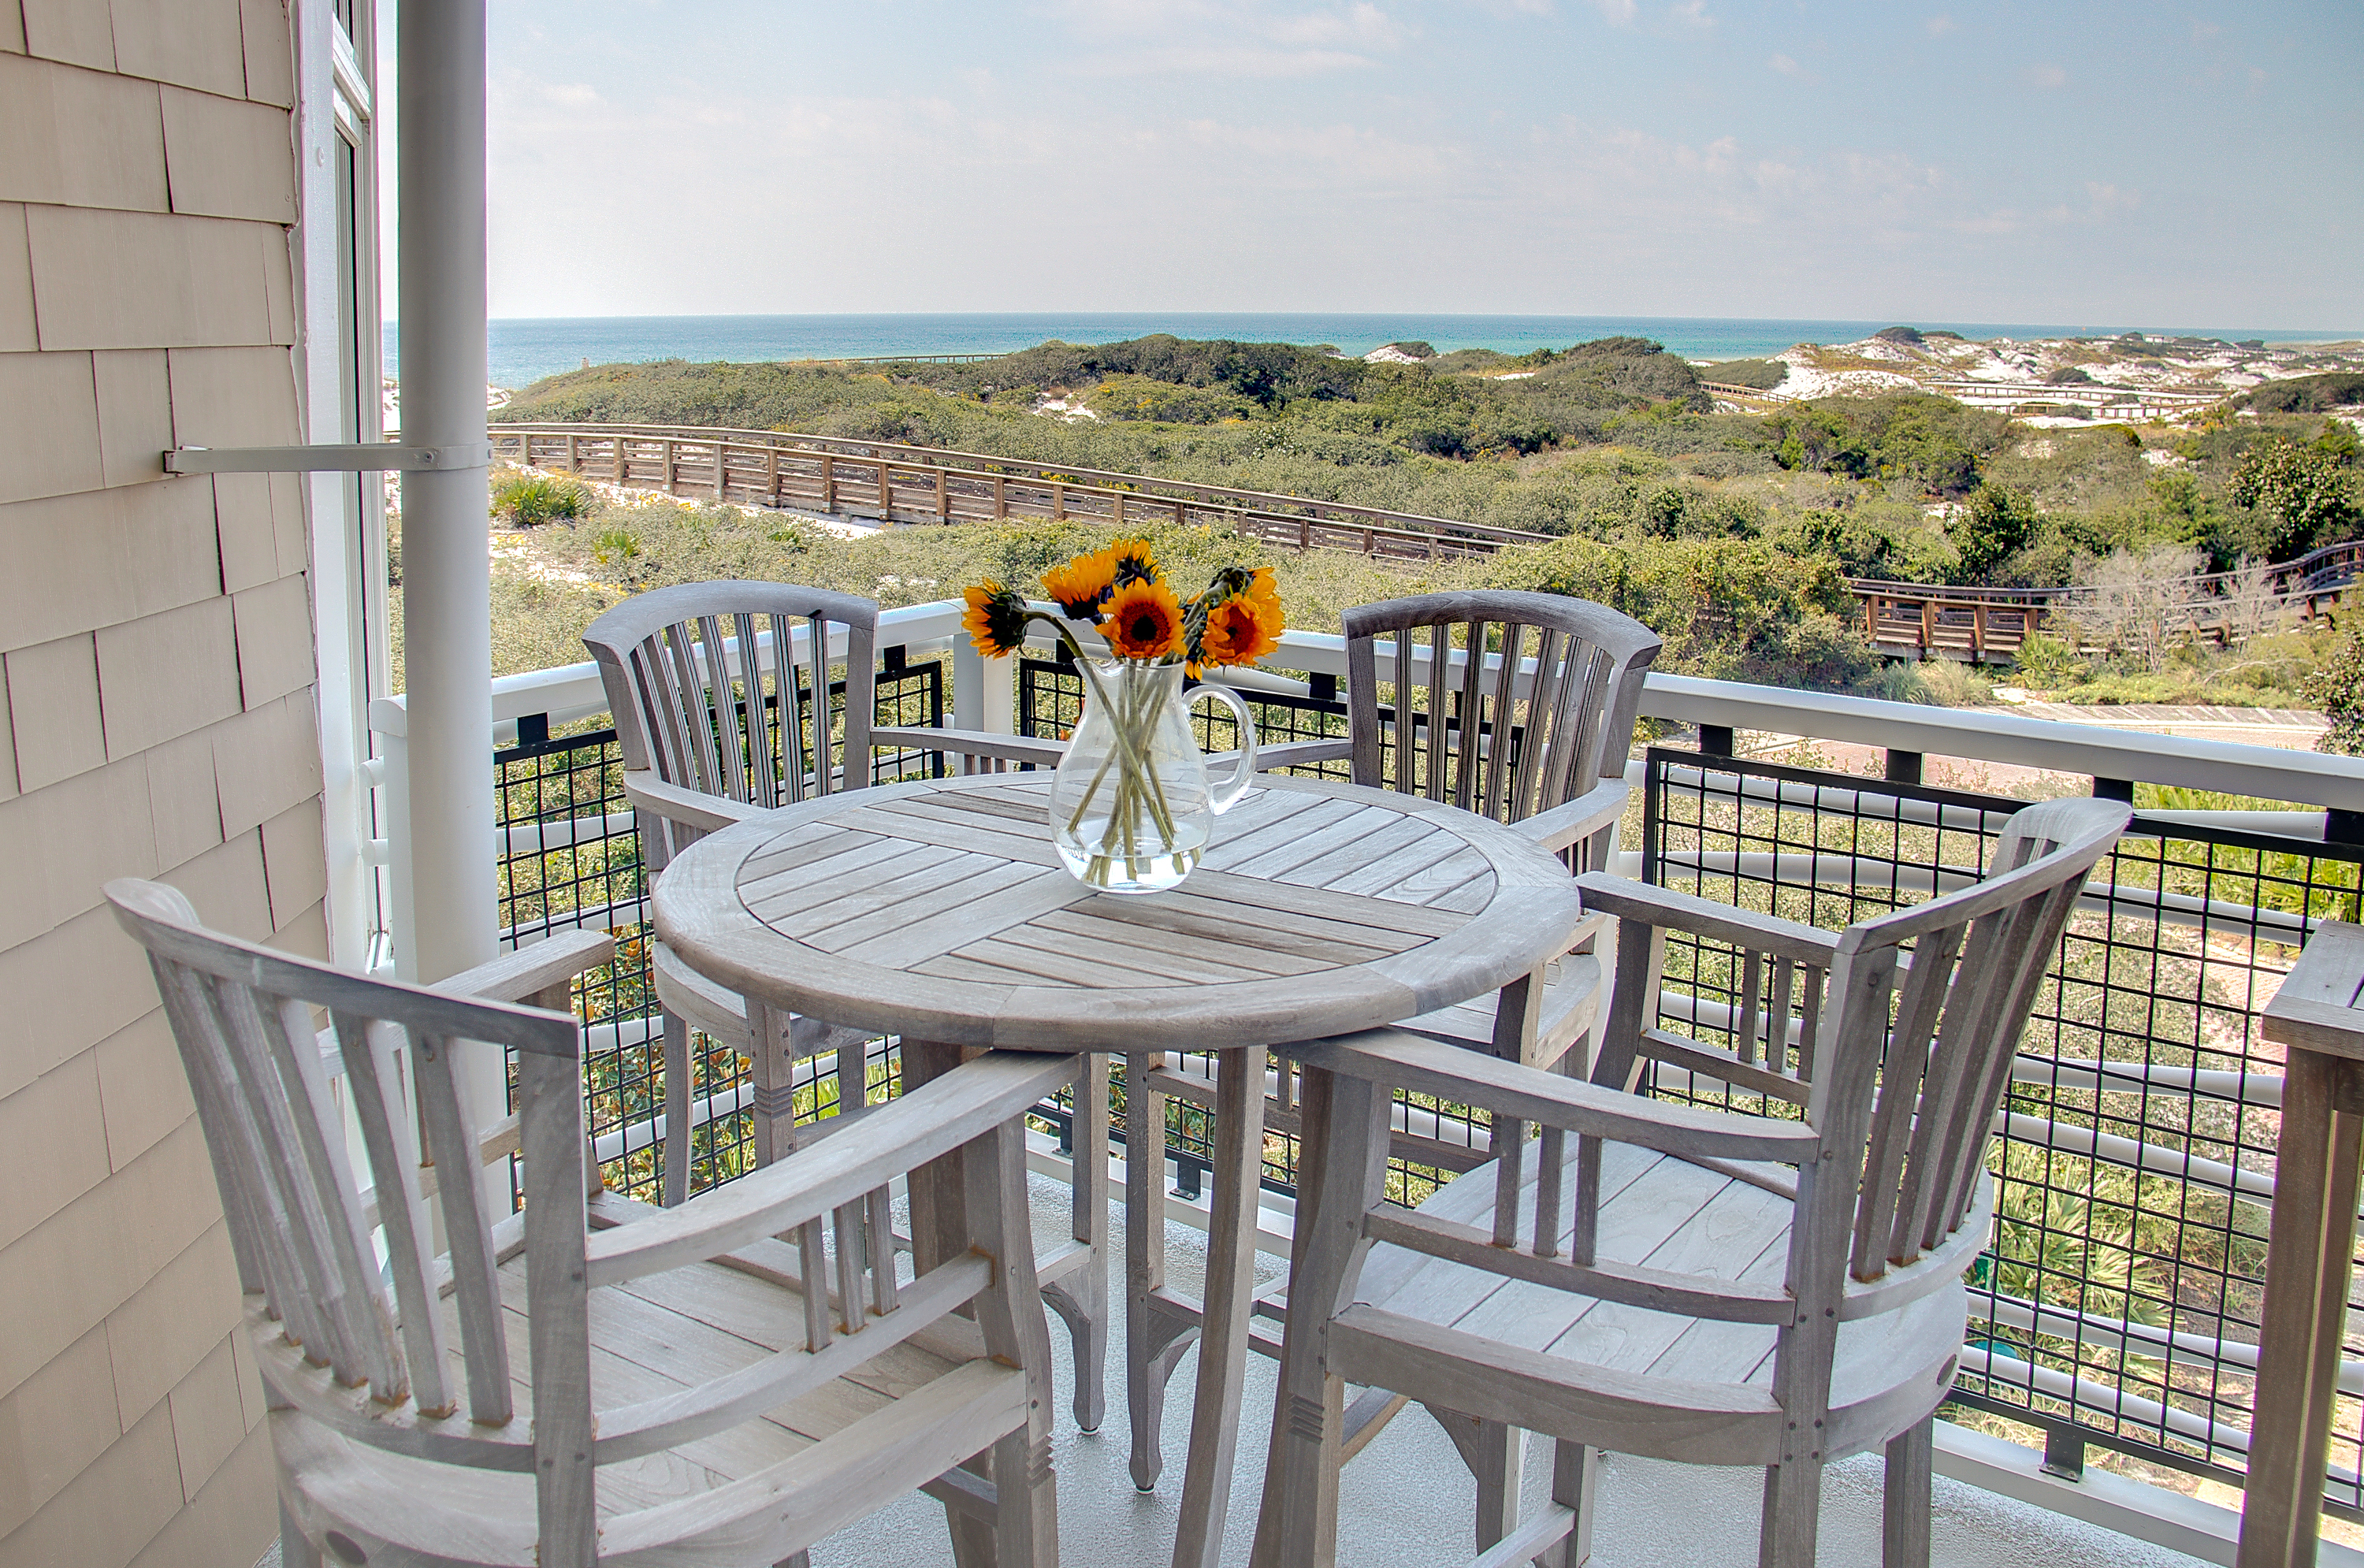 Alfresco dining with amazing views is located just off of the kitchen area